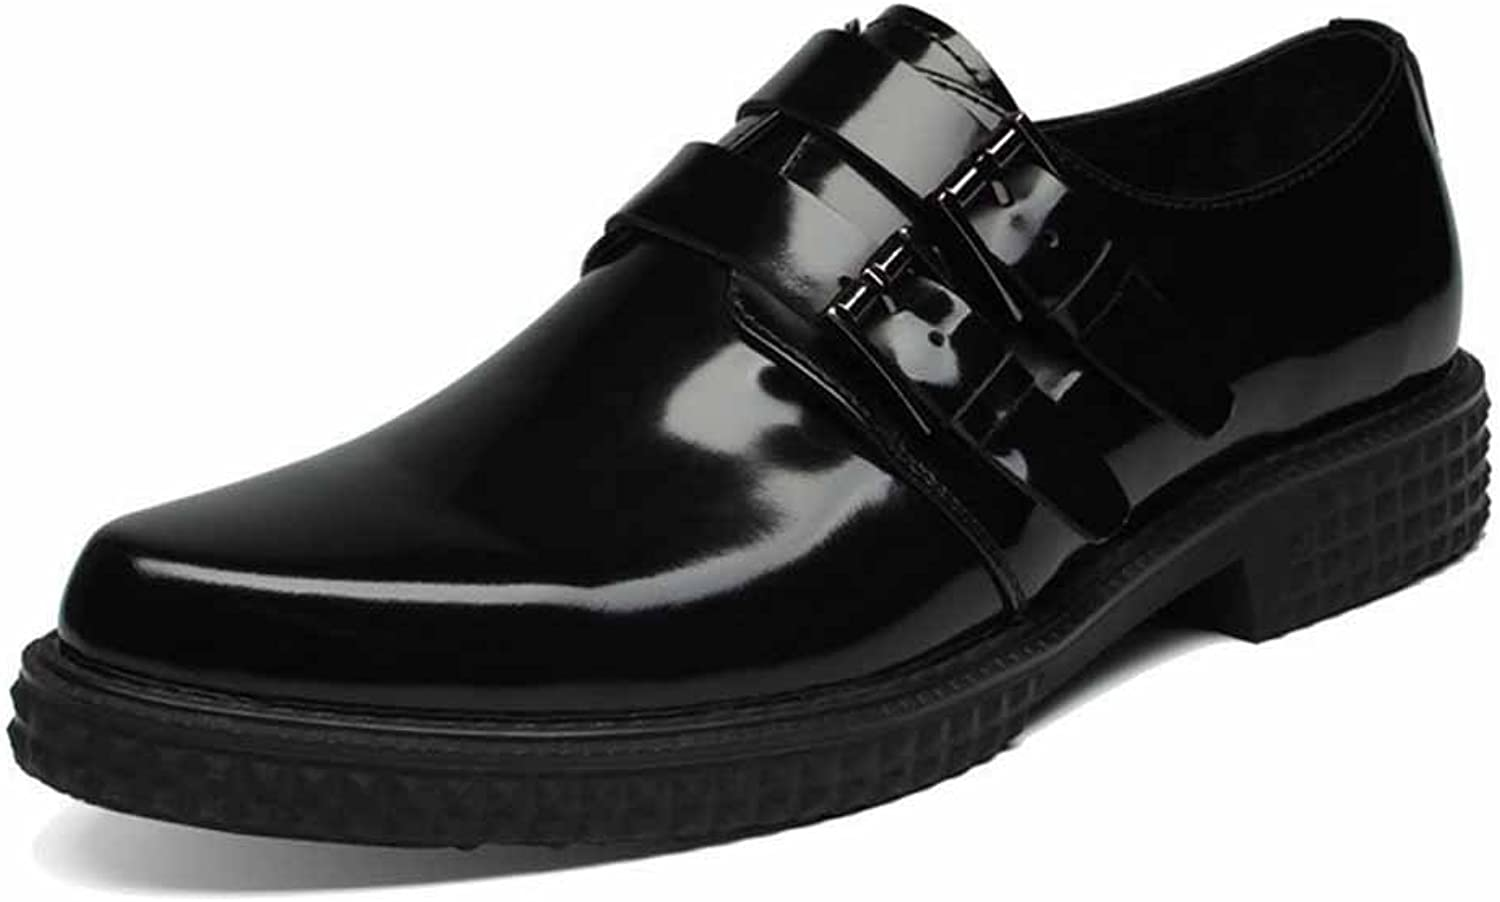 Men Patent Leather Business Dress shoes New Buckle Oxford Breathable Low Top Casual shoes